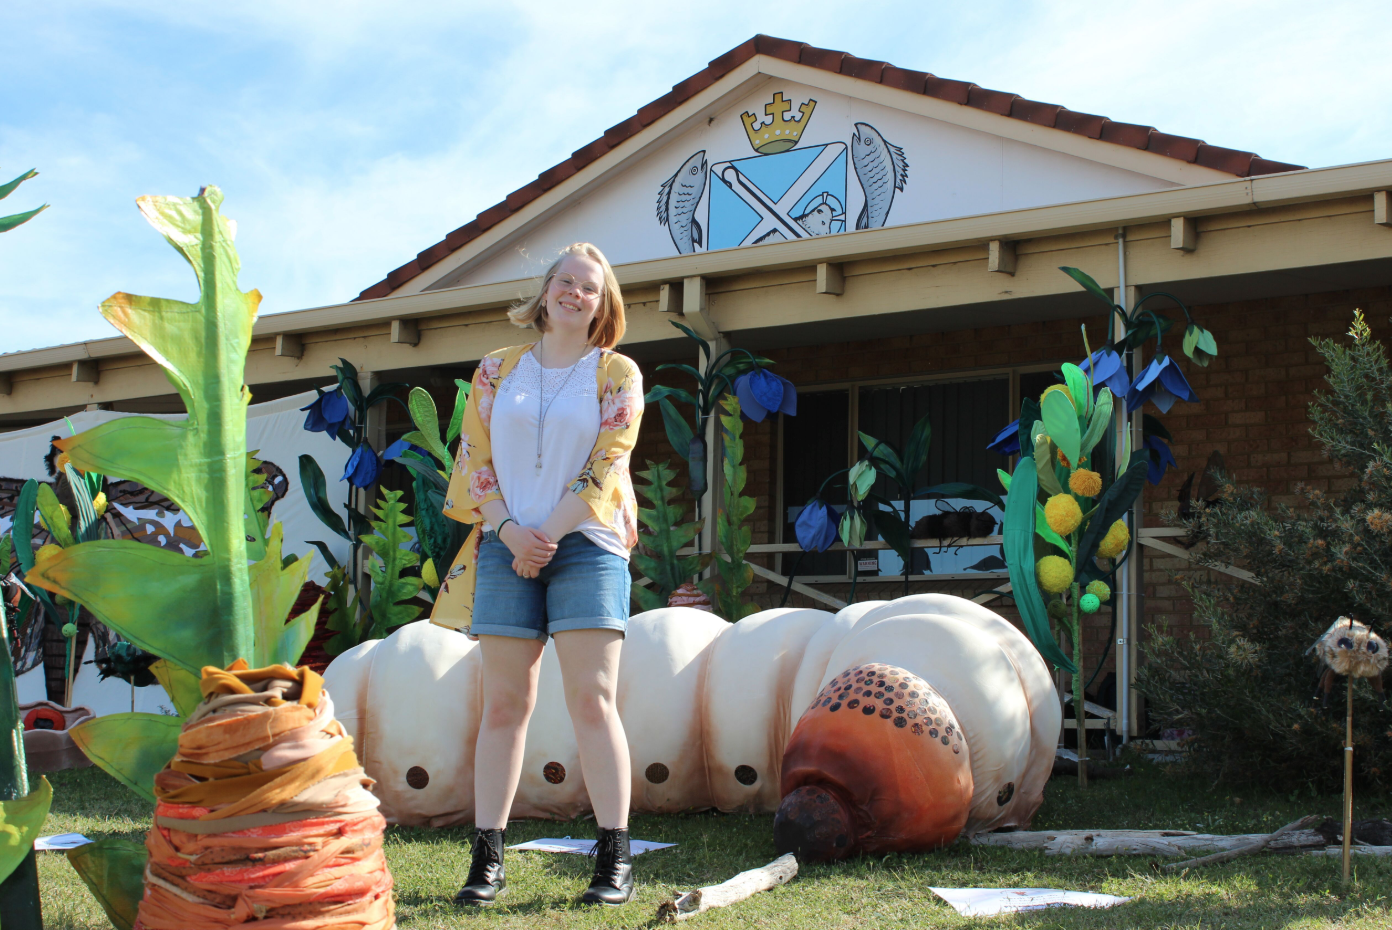 Taya Scholz was one of those working behind the scenes at the Esperance Wildflower Festival.